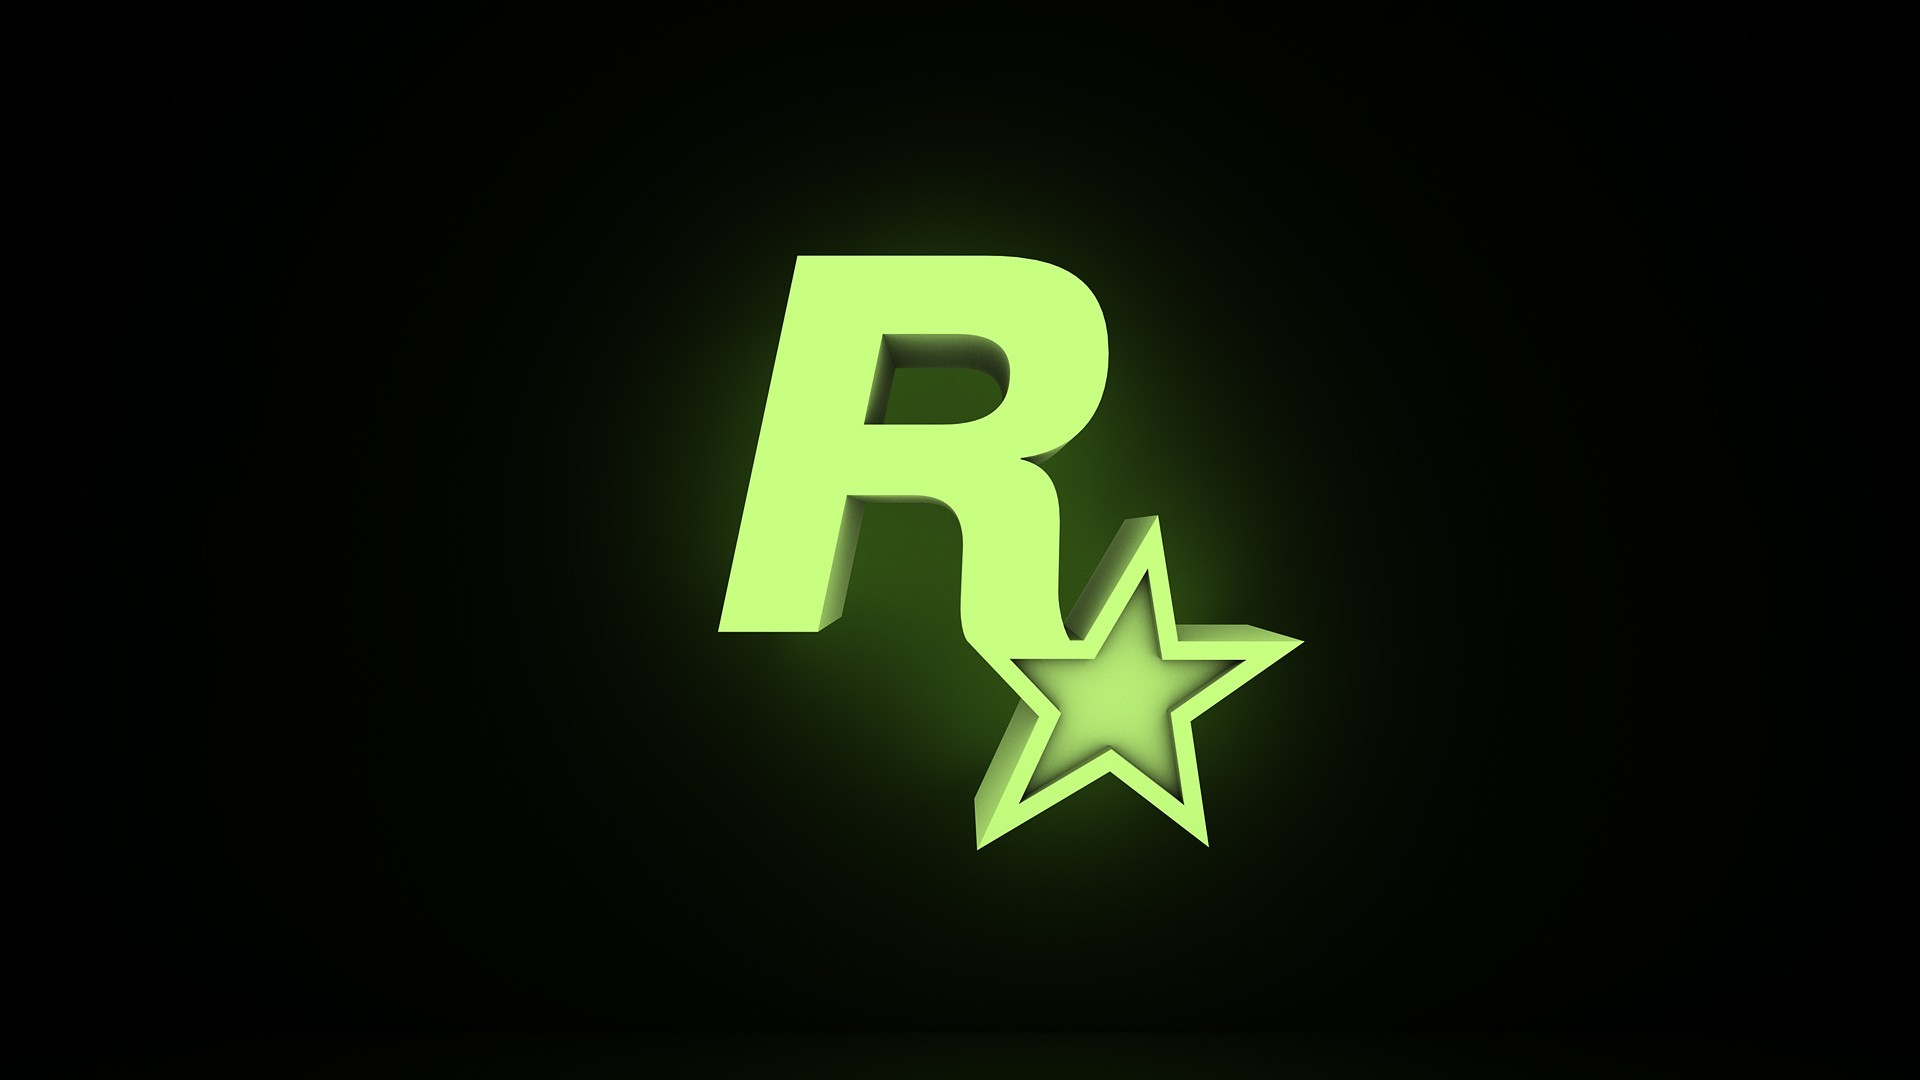 1920x1080 Rockstar Games Wallpaper  Rockstar Games Glow Logos New